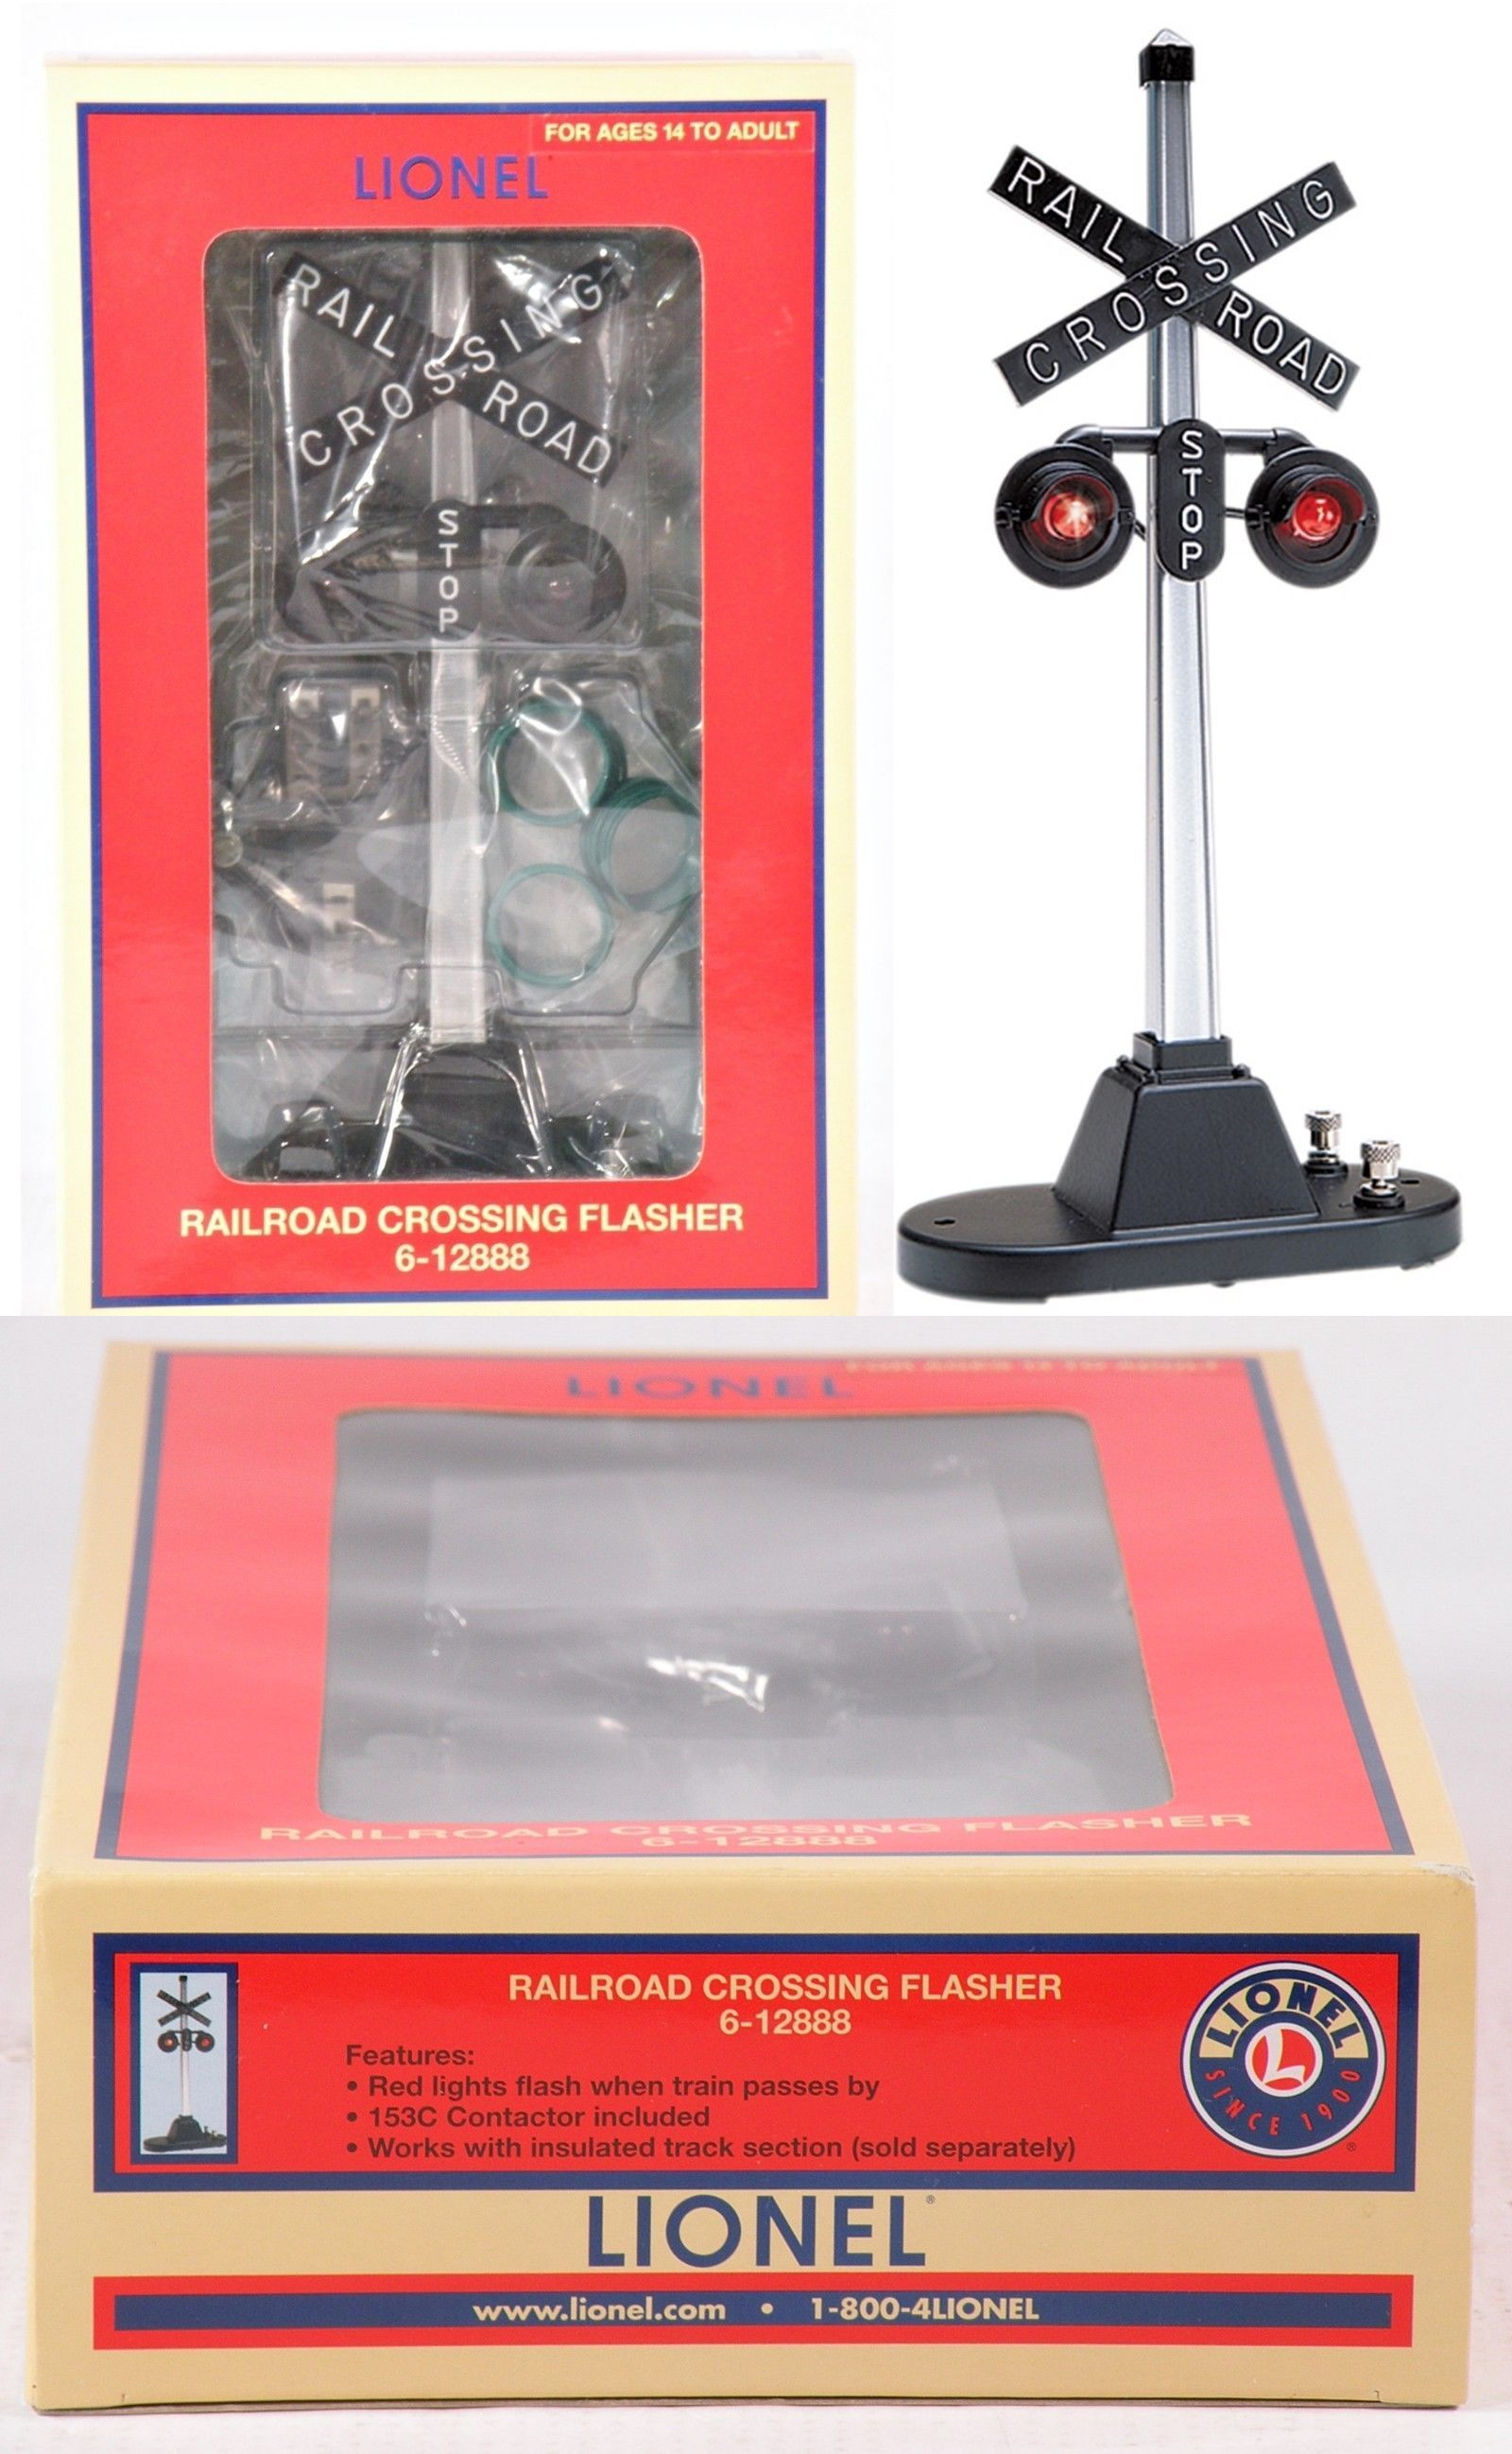 hight resolution of signals 81051 lionel 6 12888 railroad crossing flasher 154 c9 buy it now only 51 on ebay signals lionel railroad crossing flasher